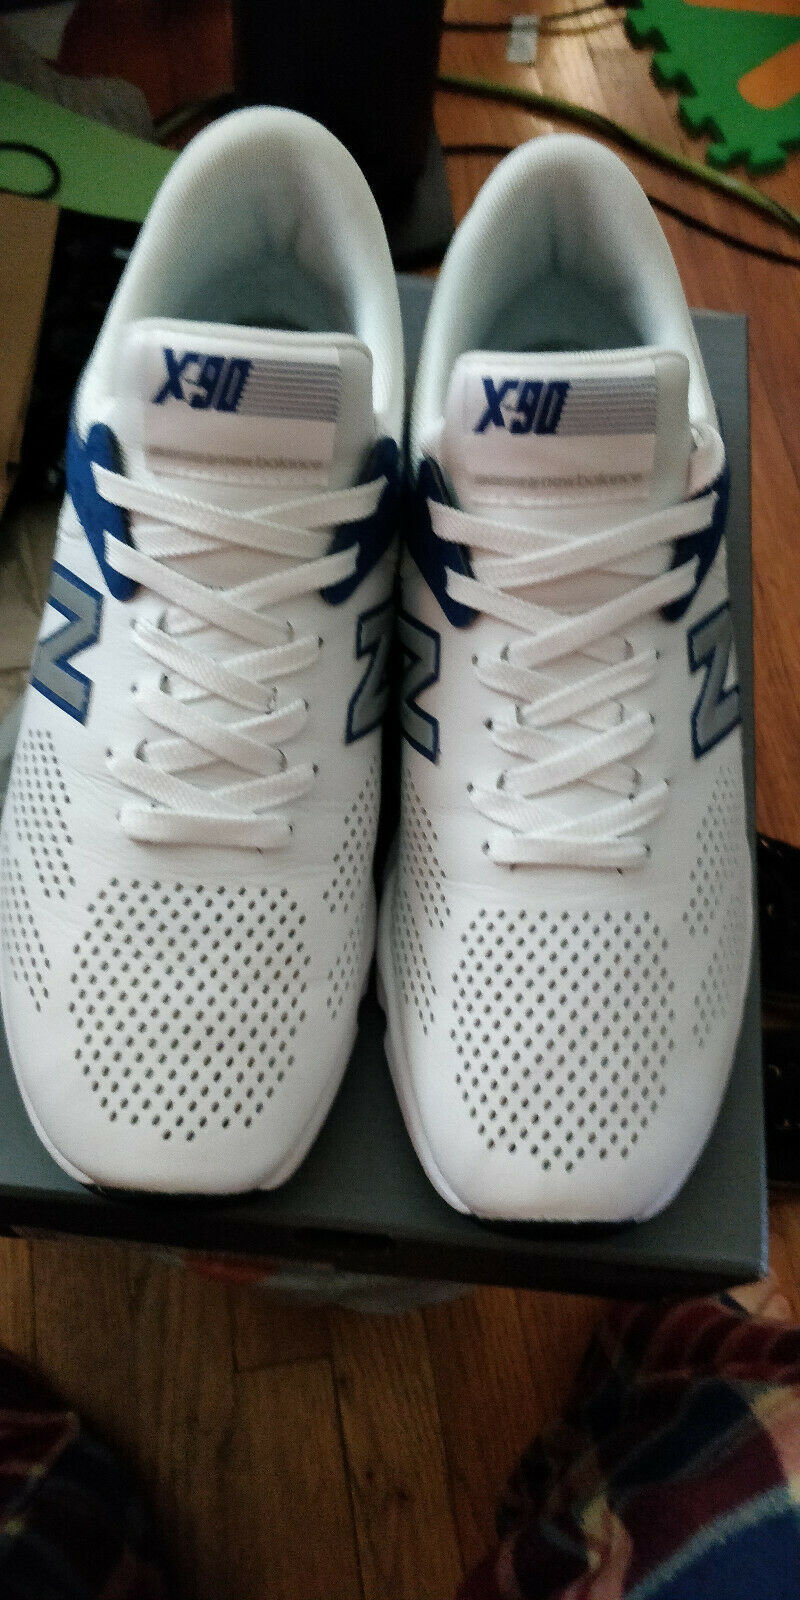 New Balance Sneaker MSX90 X90 Size 10 - Preowned